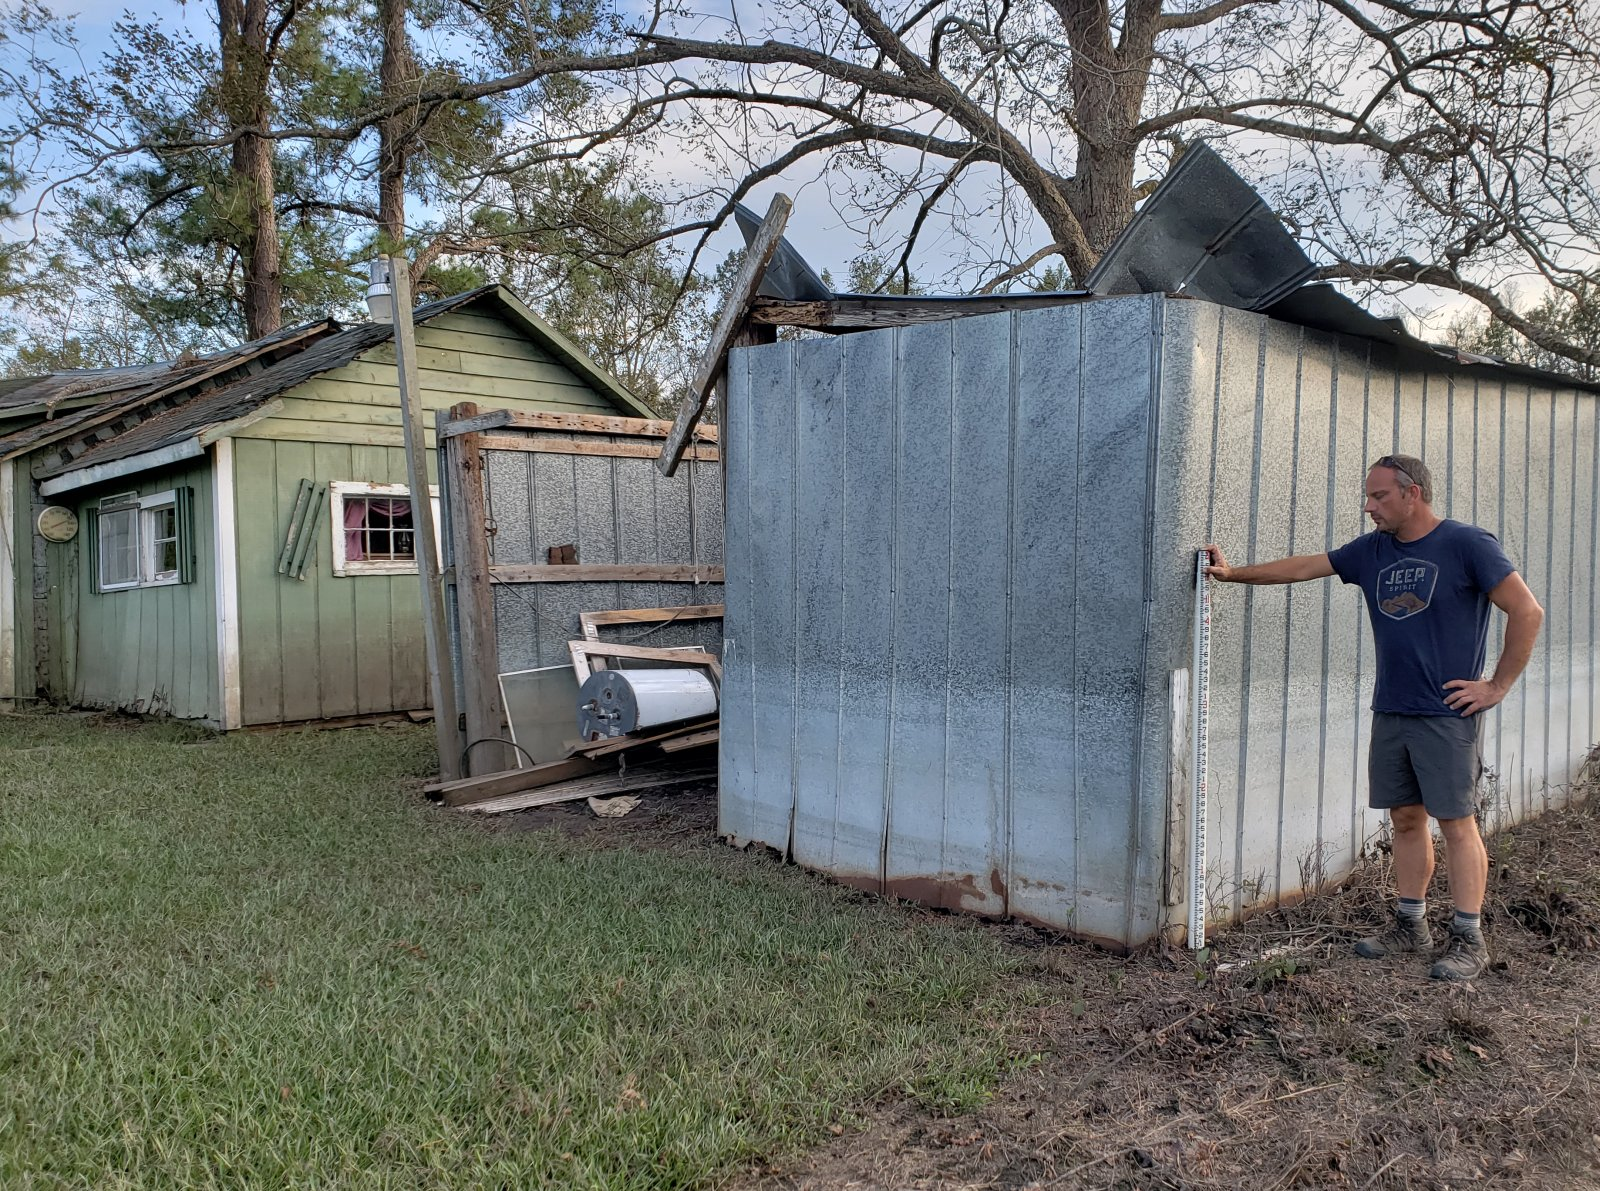 Widespread flooding occurred in the Crusoe Island community near the Brunswick/Columbus County line. Here a high water mark is being surveyed over three feet above ground level on a metal shed.